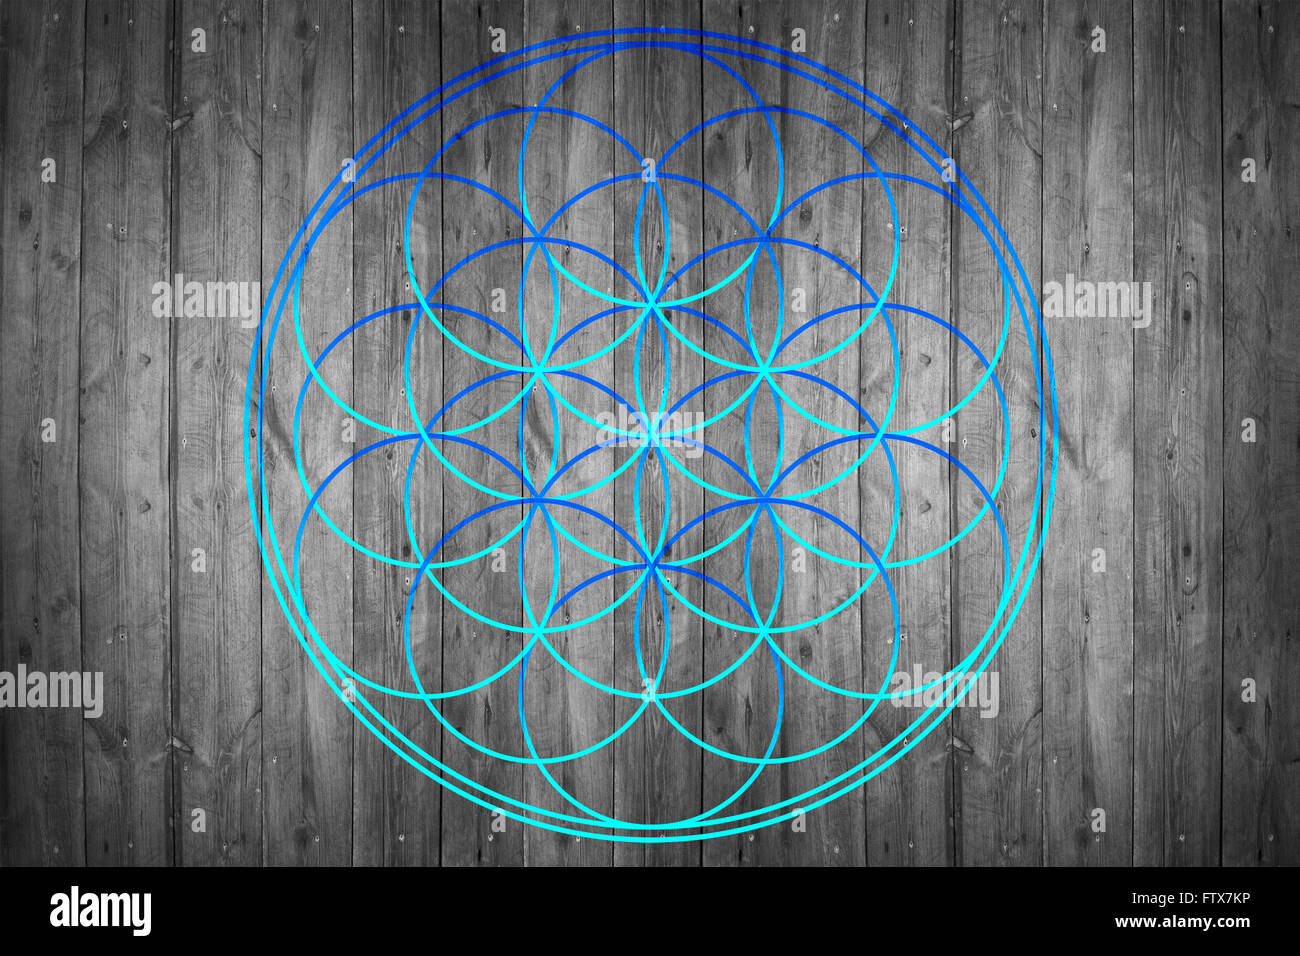 Flower of life - Stock Image